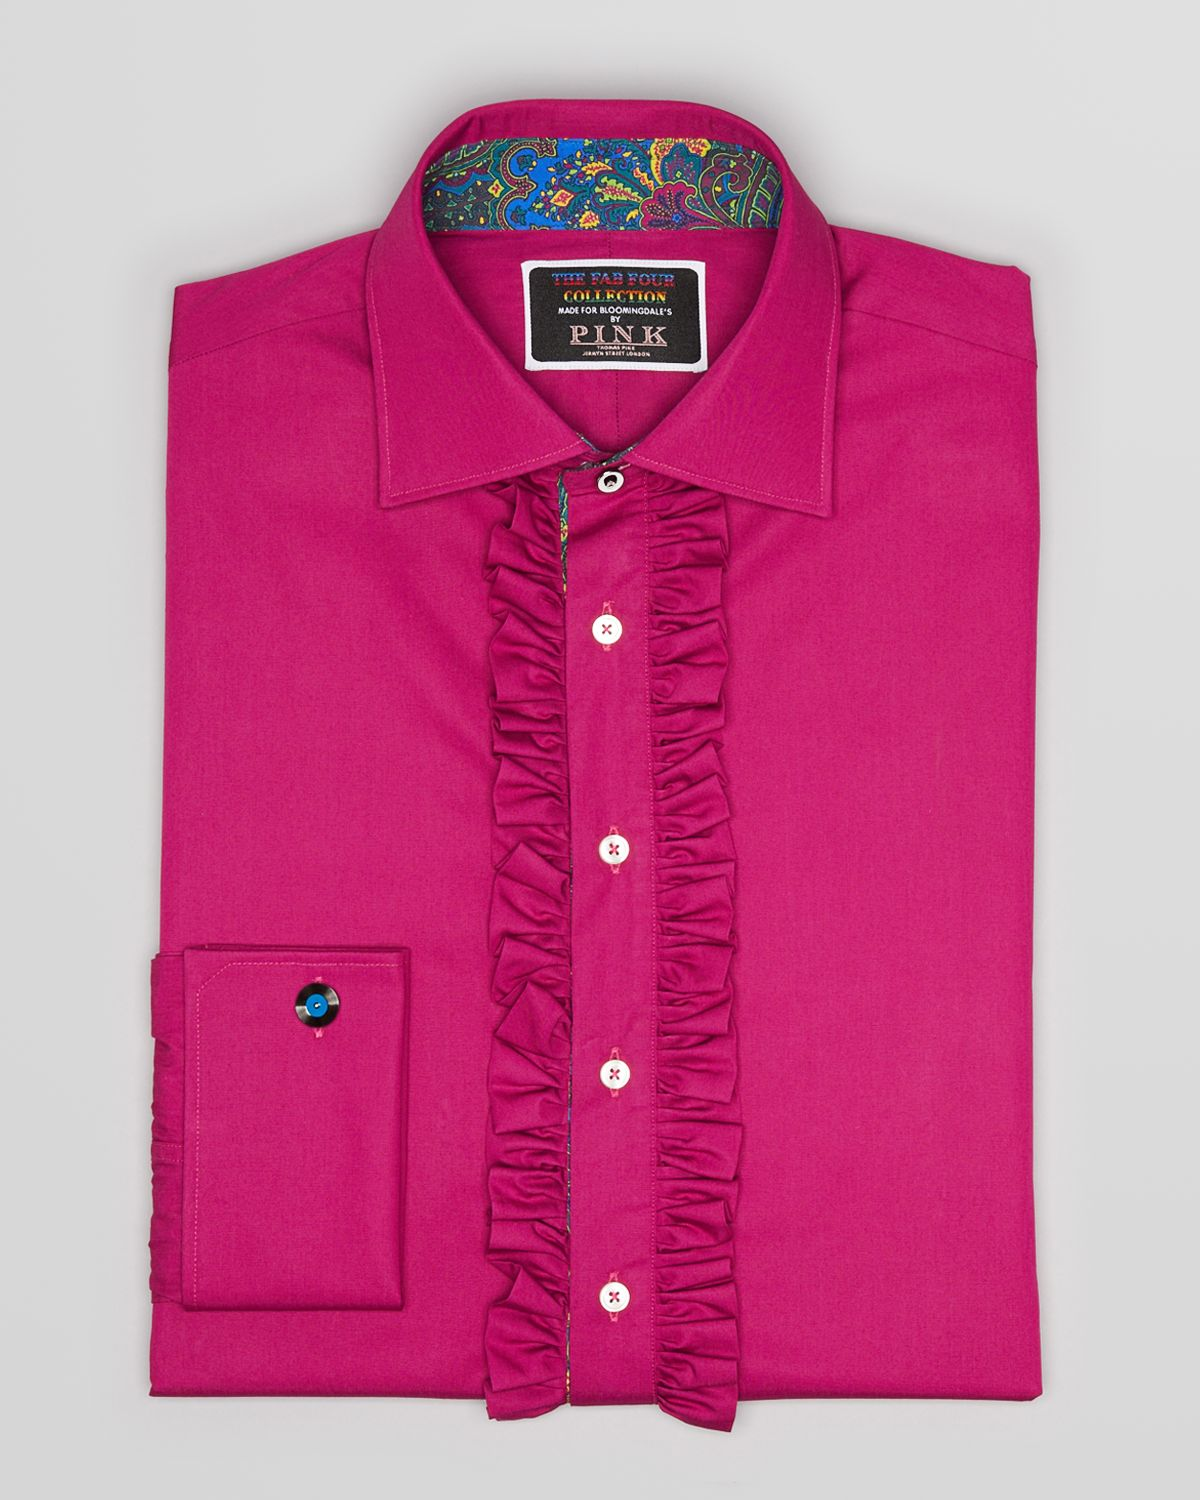 Thomas pink Fab Four Collection Solid Ruffle Dress Shirt ...